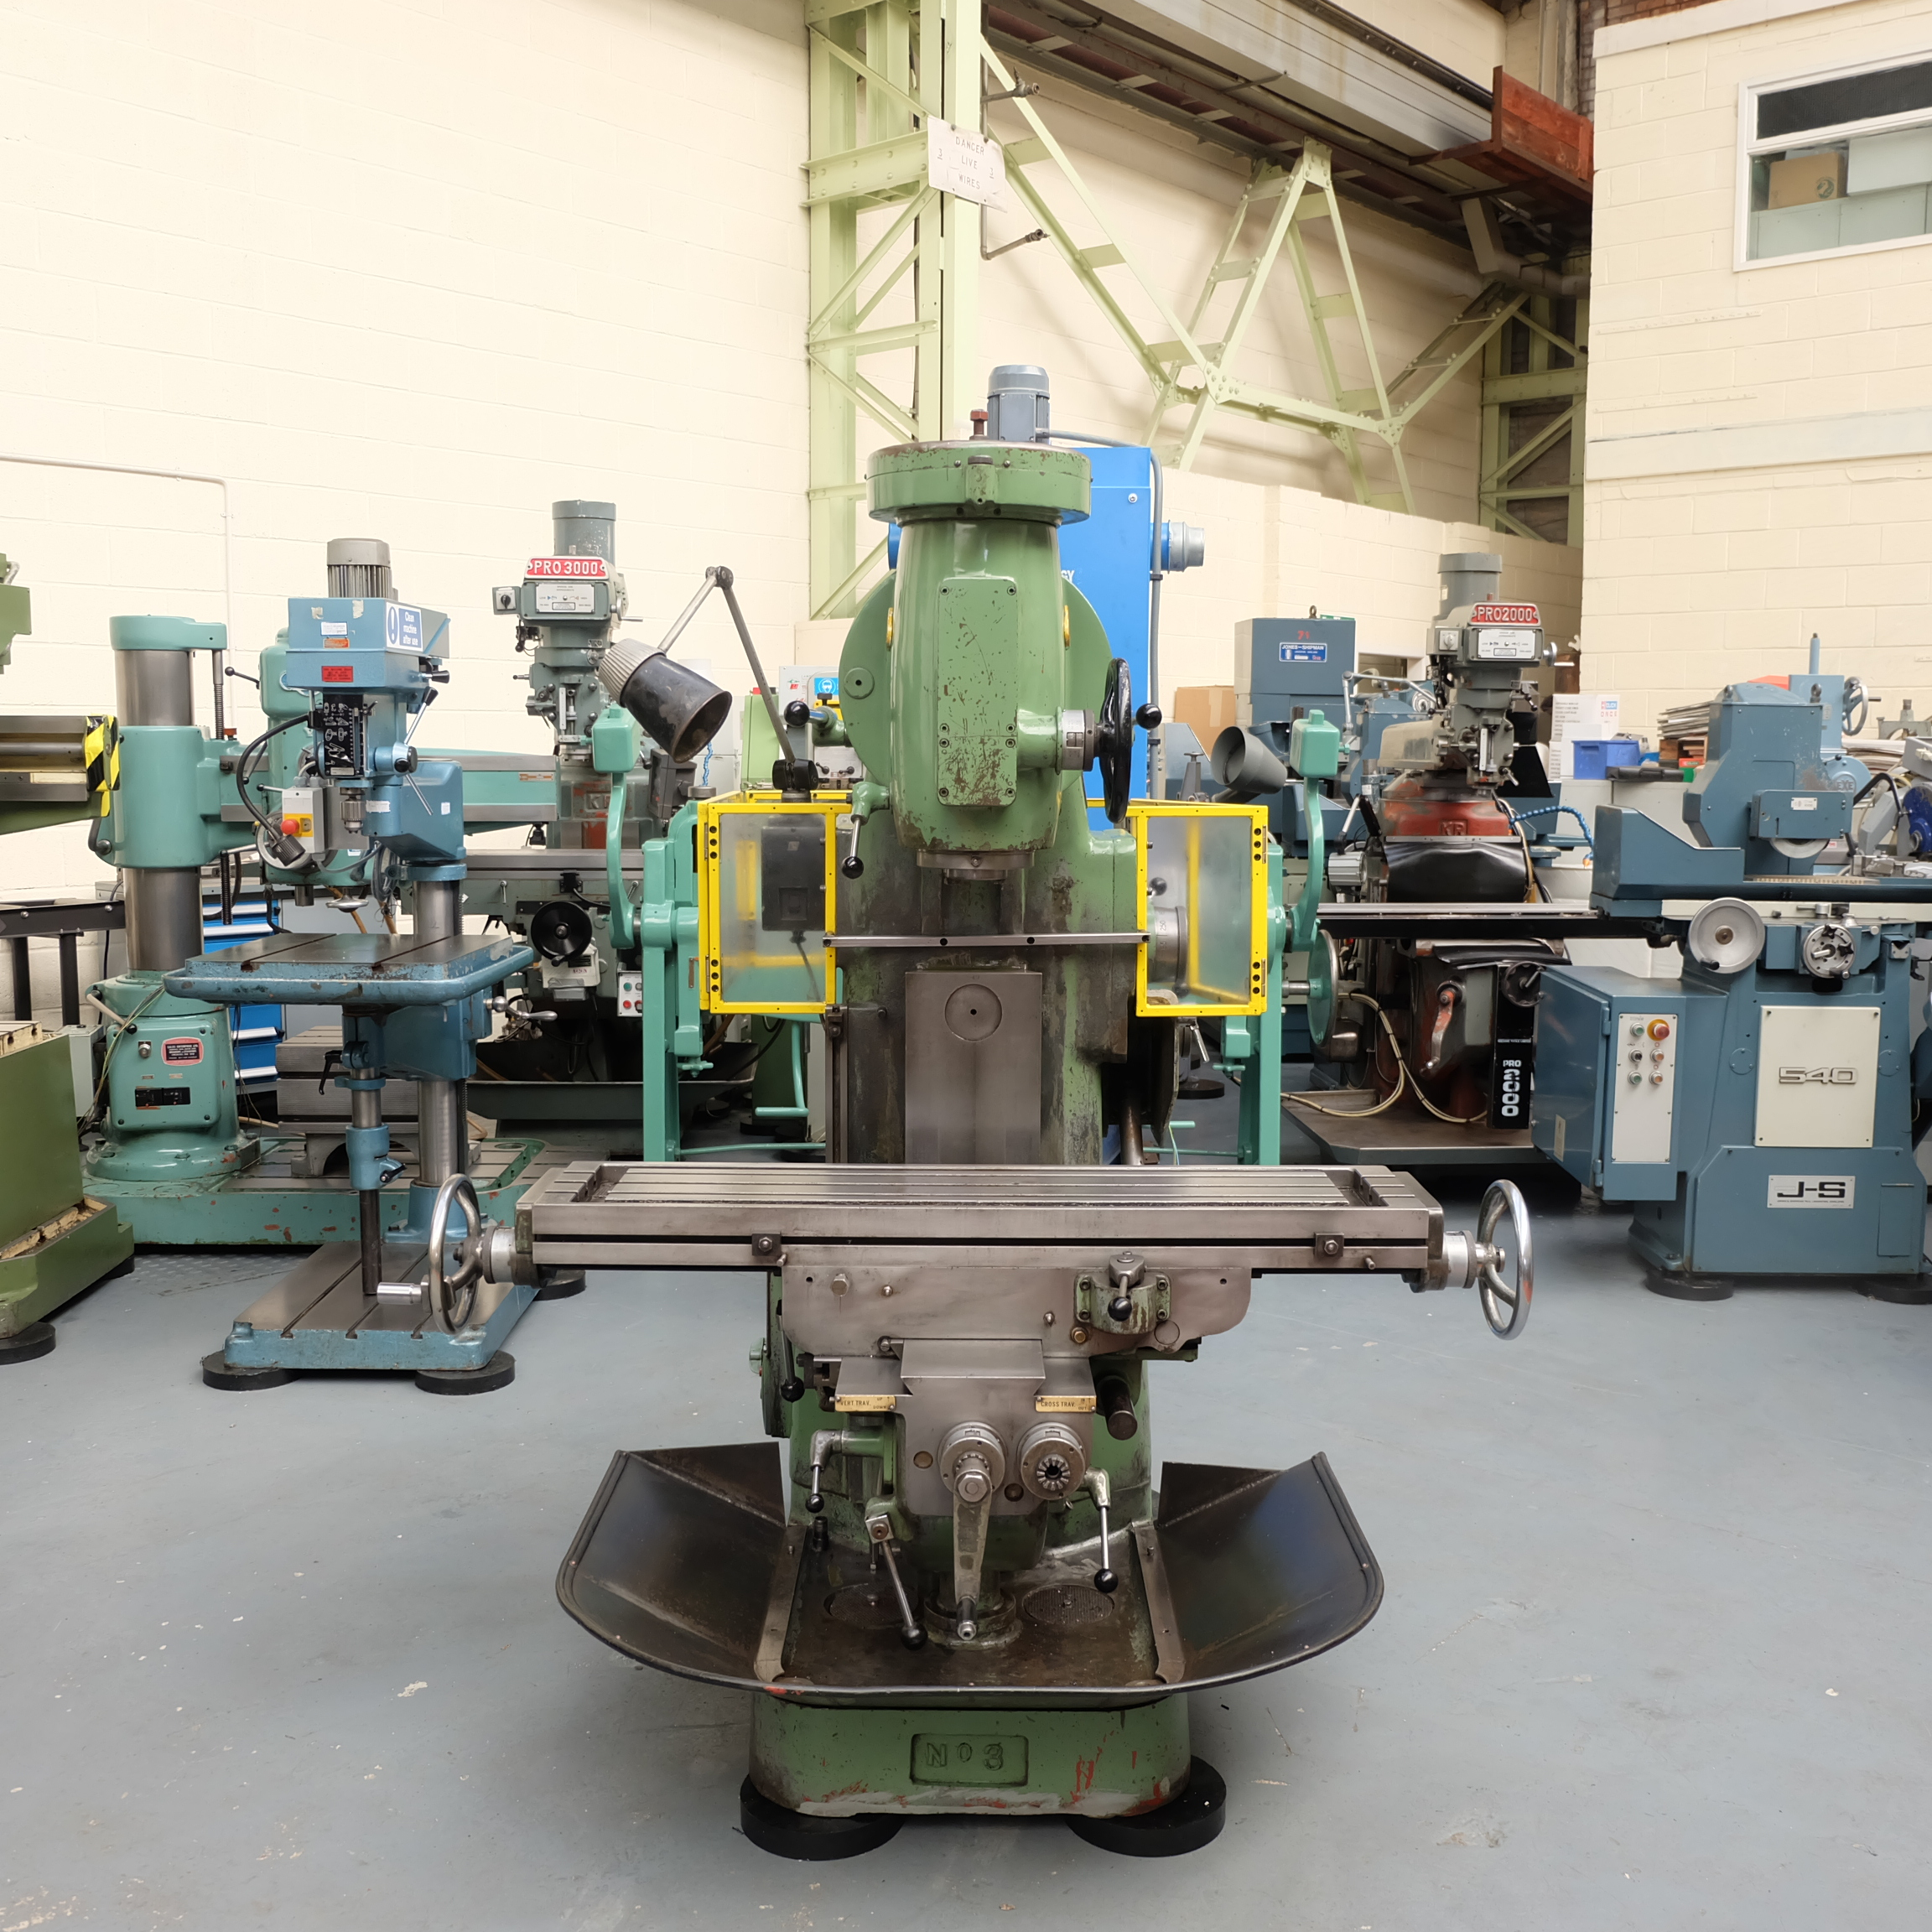 Richmond No 3V Vertical Milling Machine. - Image 2 of 12